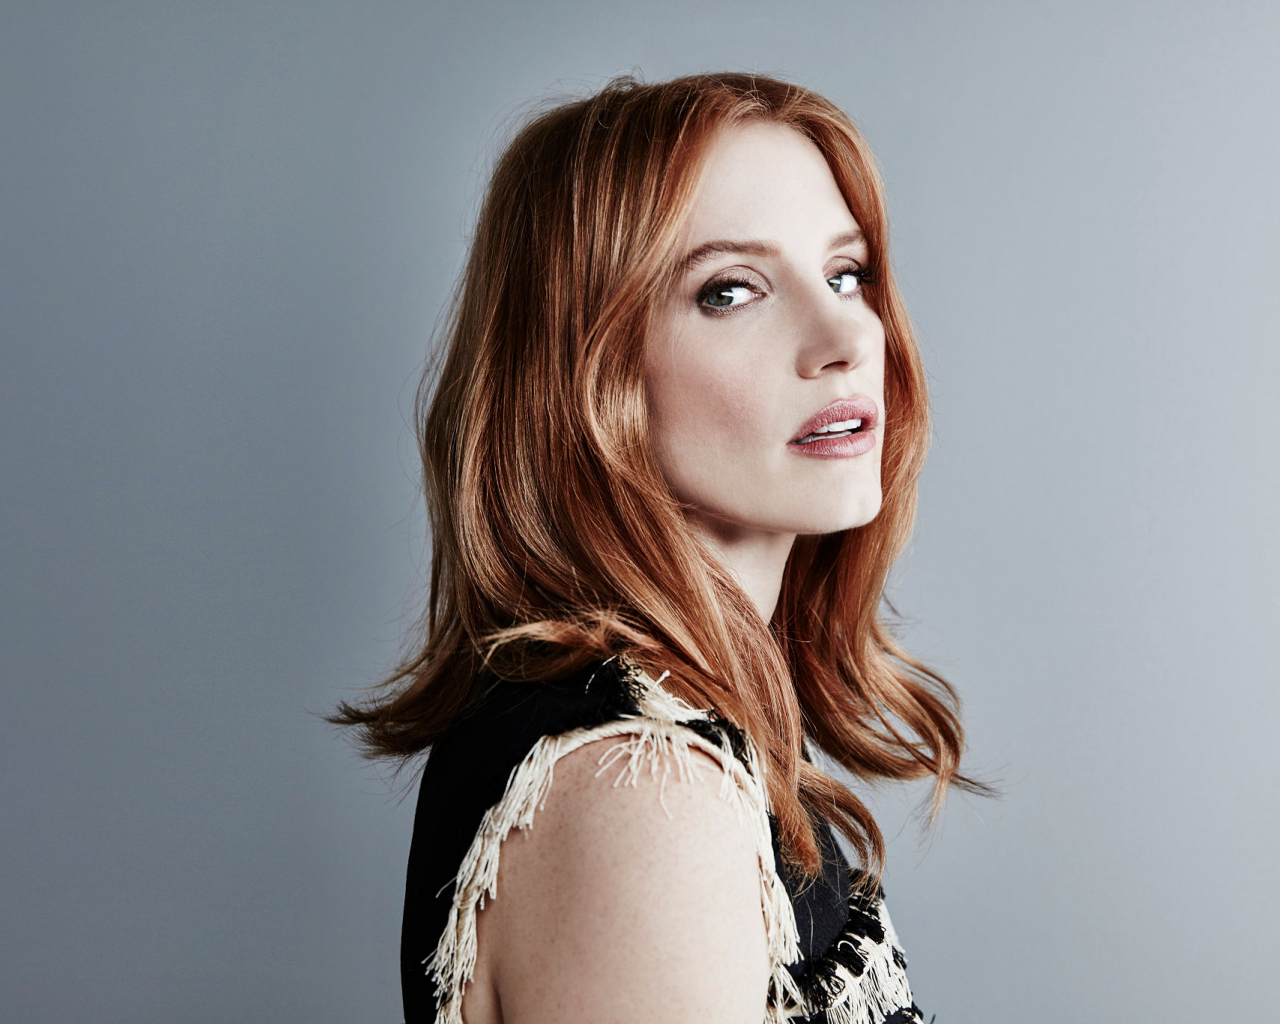 1280x1024 wallpaper Jessica chastain, red head, actress